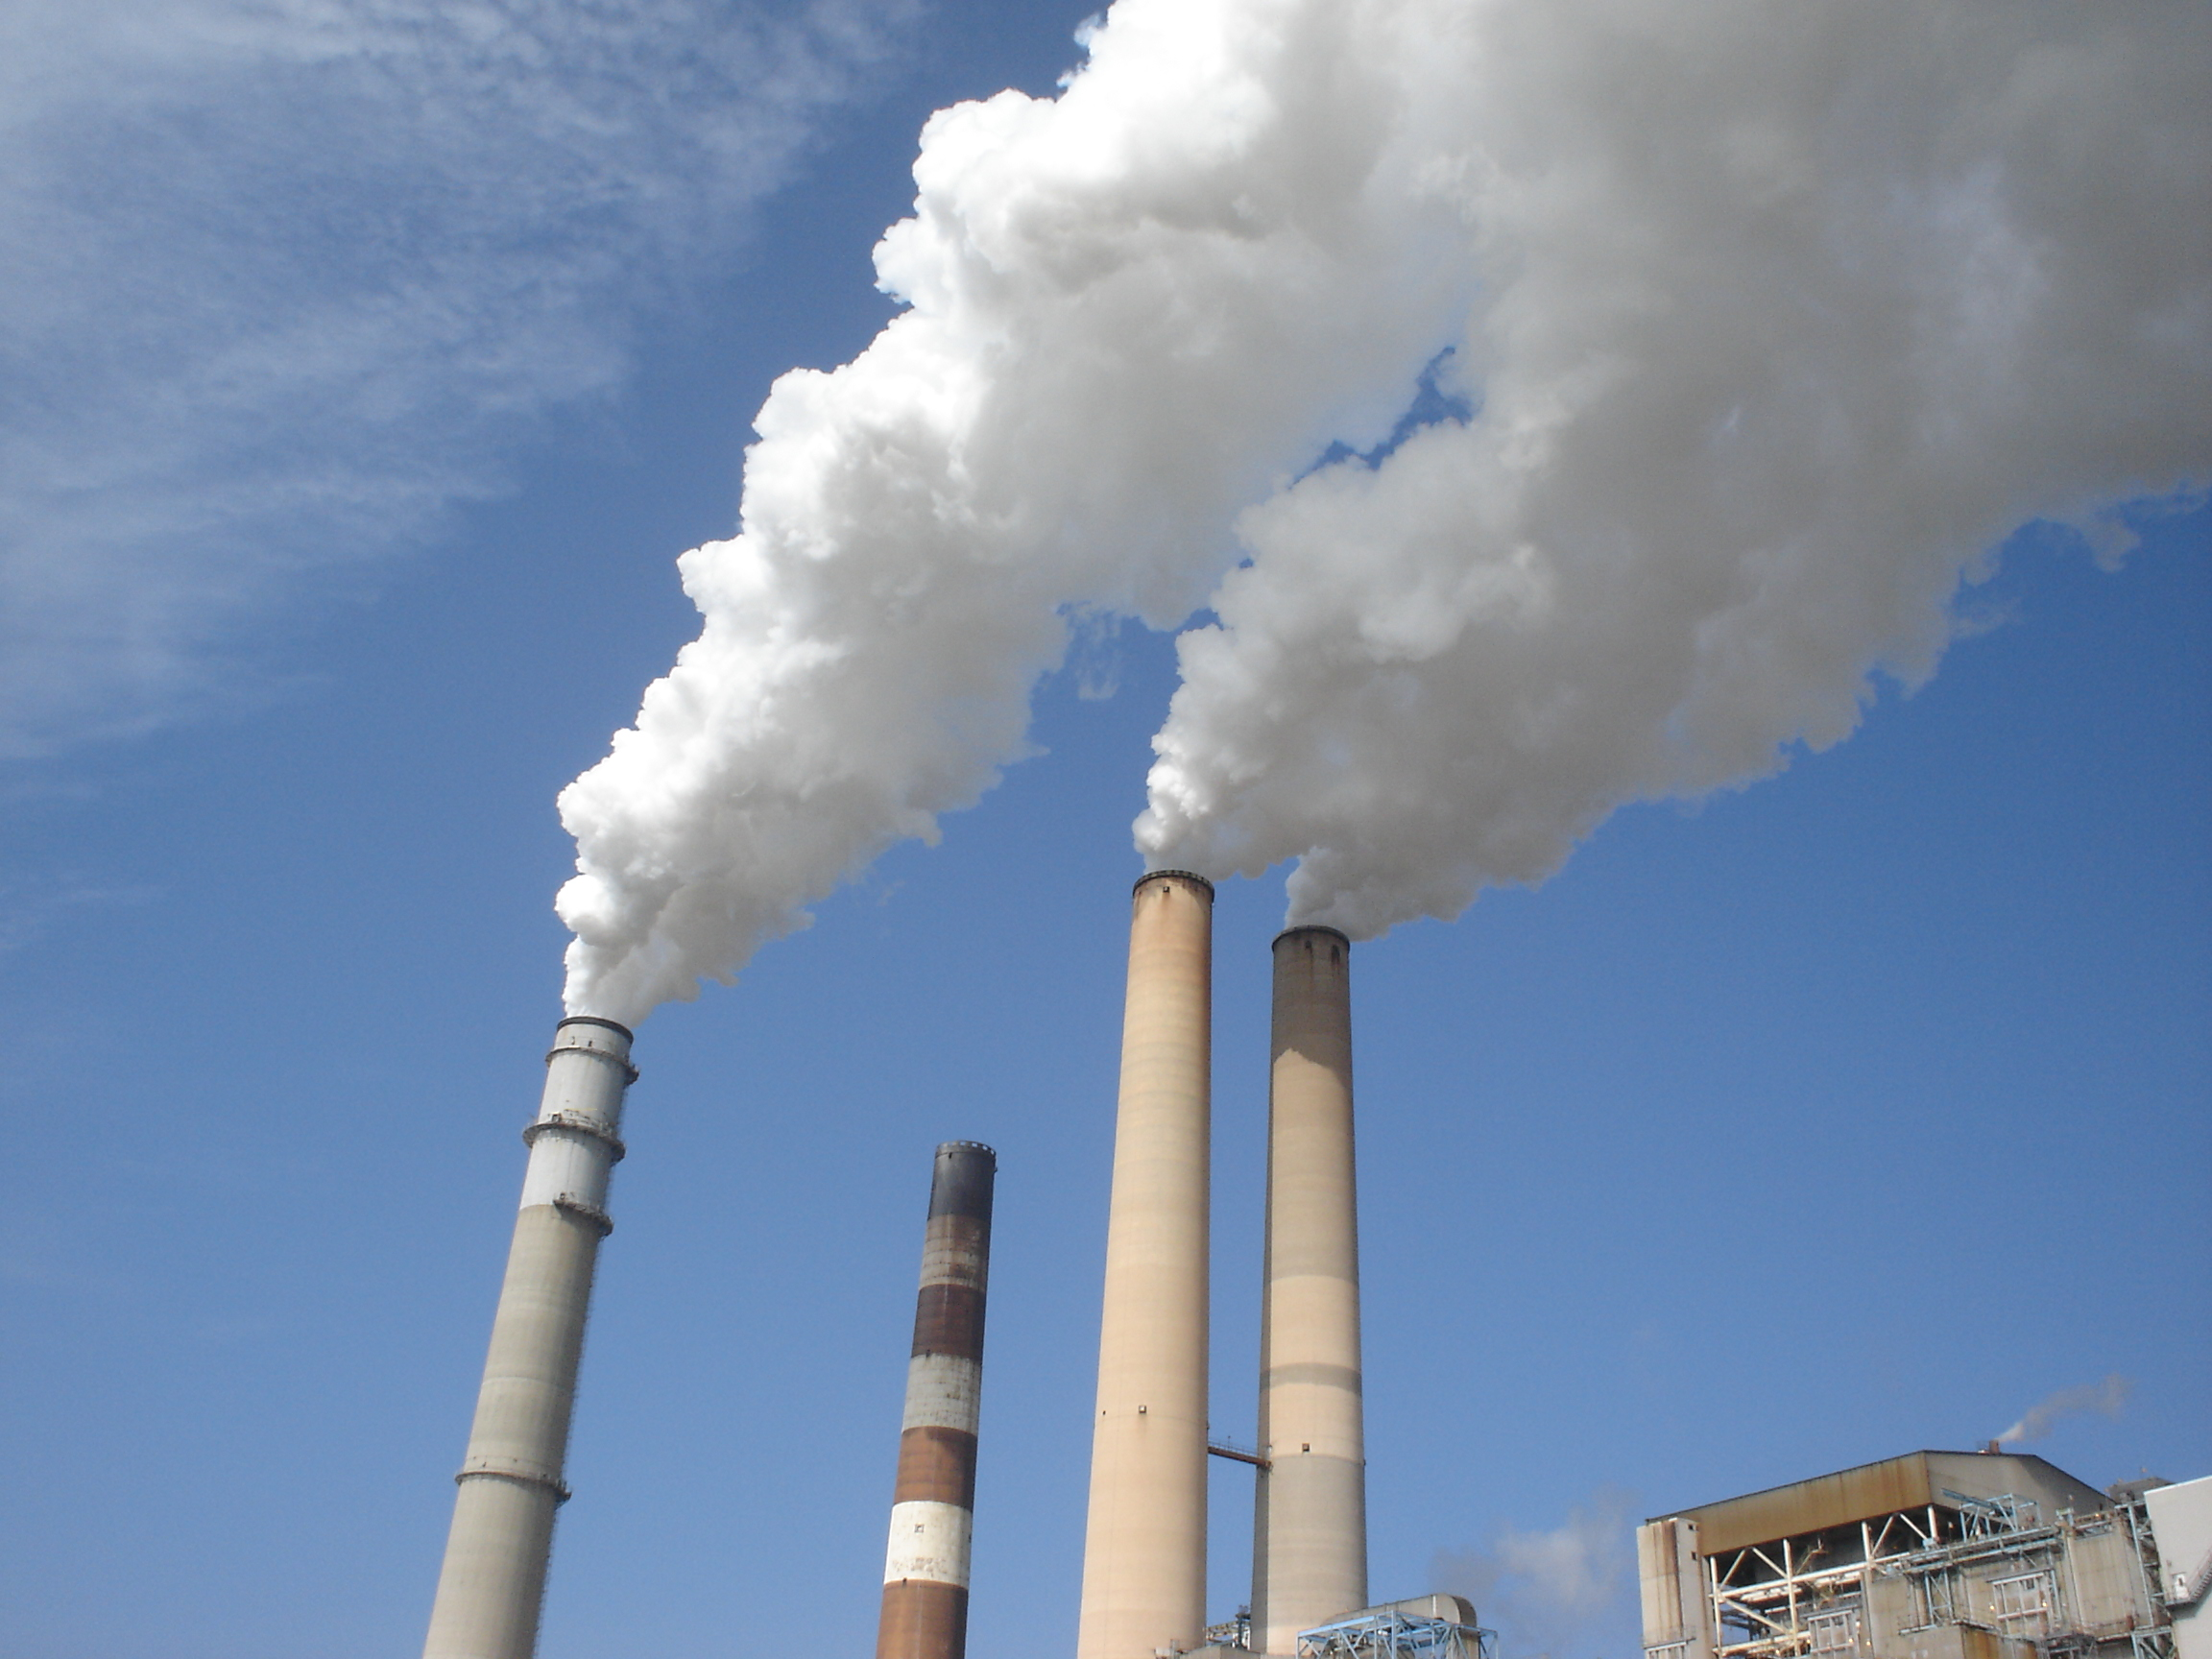 Solving the carbon emissions problem one credit at a time anonymous,Apollo Beach power plant 01432, marked as public domain, more details onWikimedia Commons